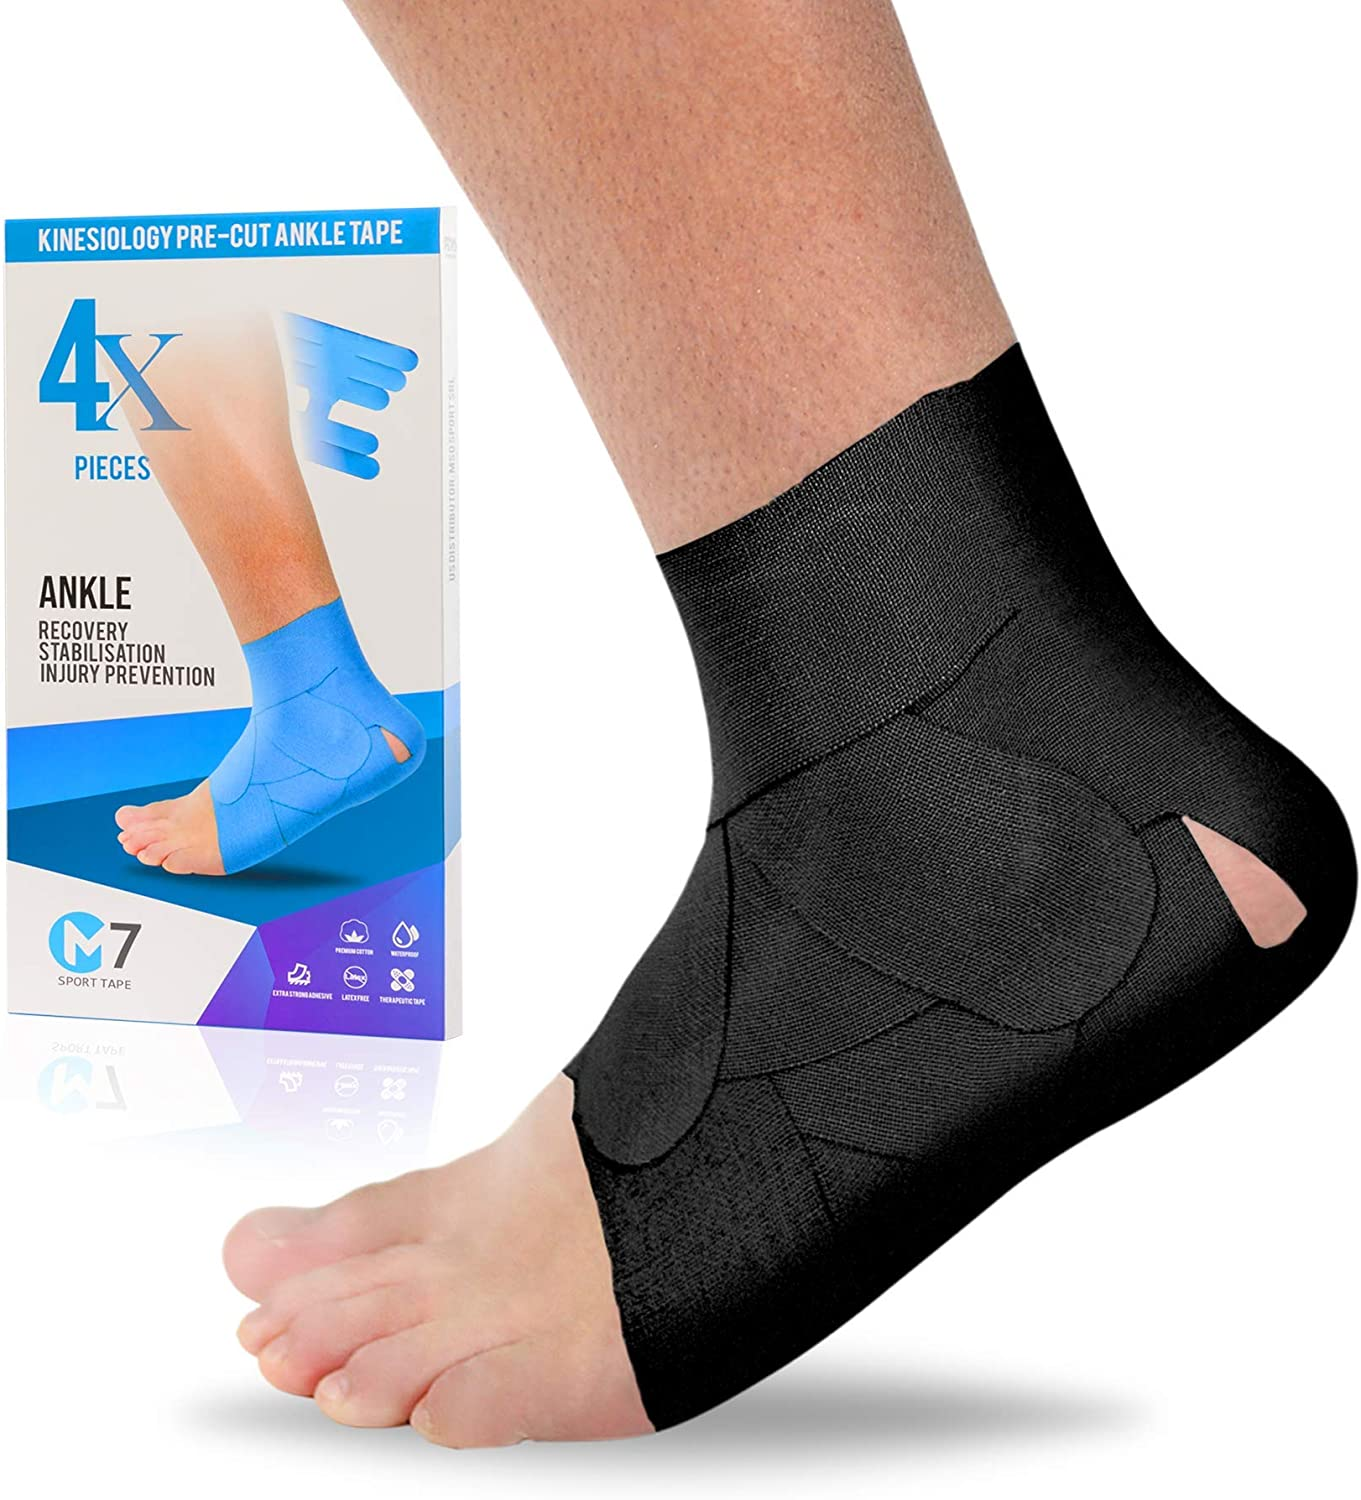 M7 Sport Kinesiology Ankle Tape for Ankle Sprain and Injury Recovery,Pain Relief Kinesiology Tape, Ankle Brace Compression Support, Plantar Fasciitis, Waterproof, Eases Swelling (Black, 4-Pack)